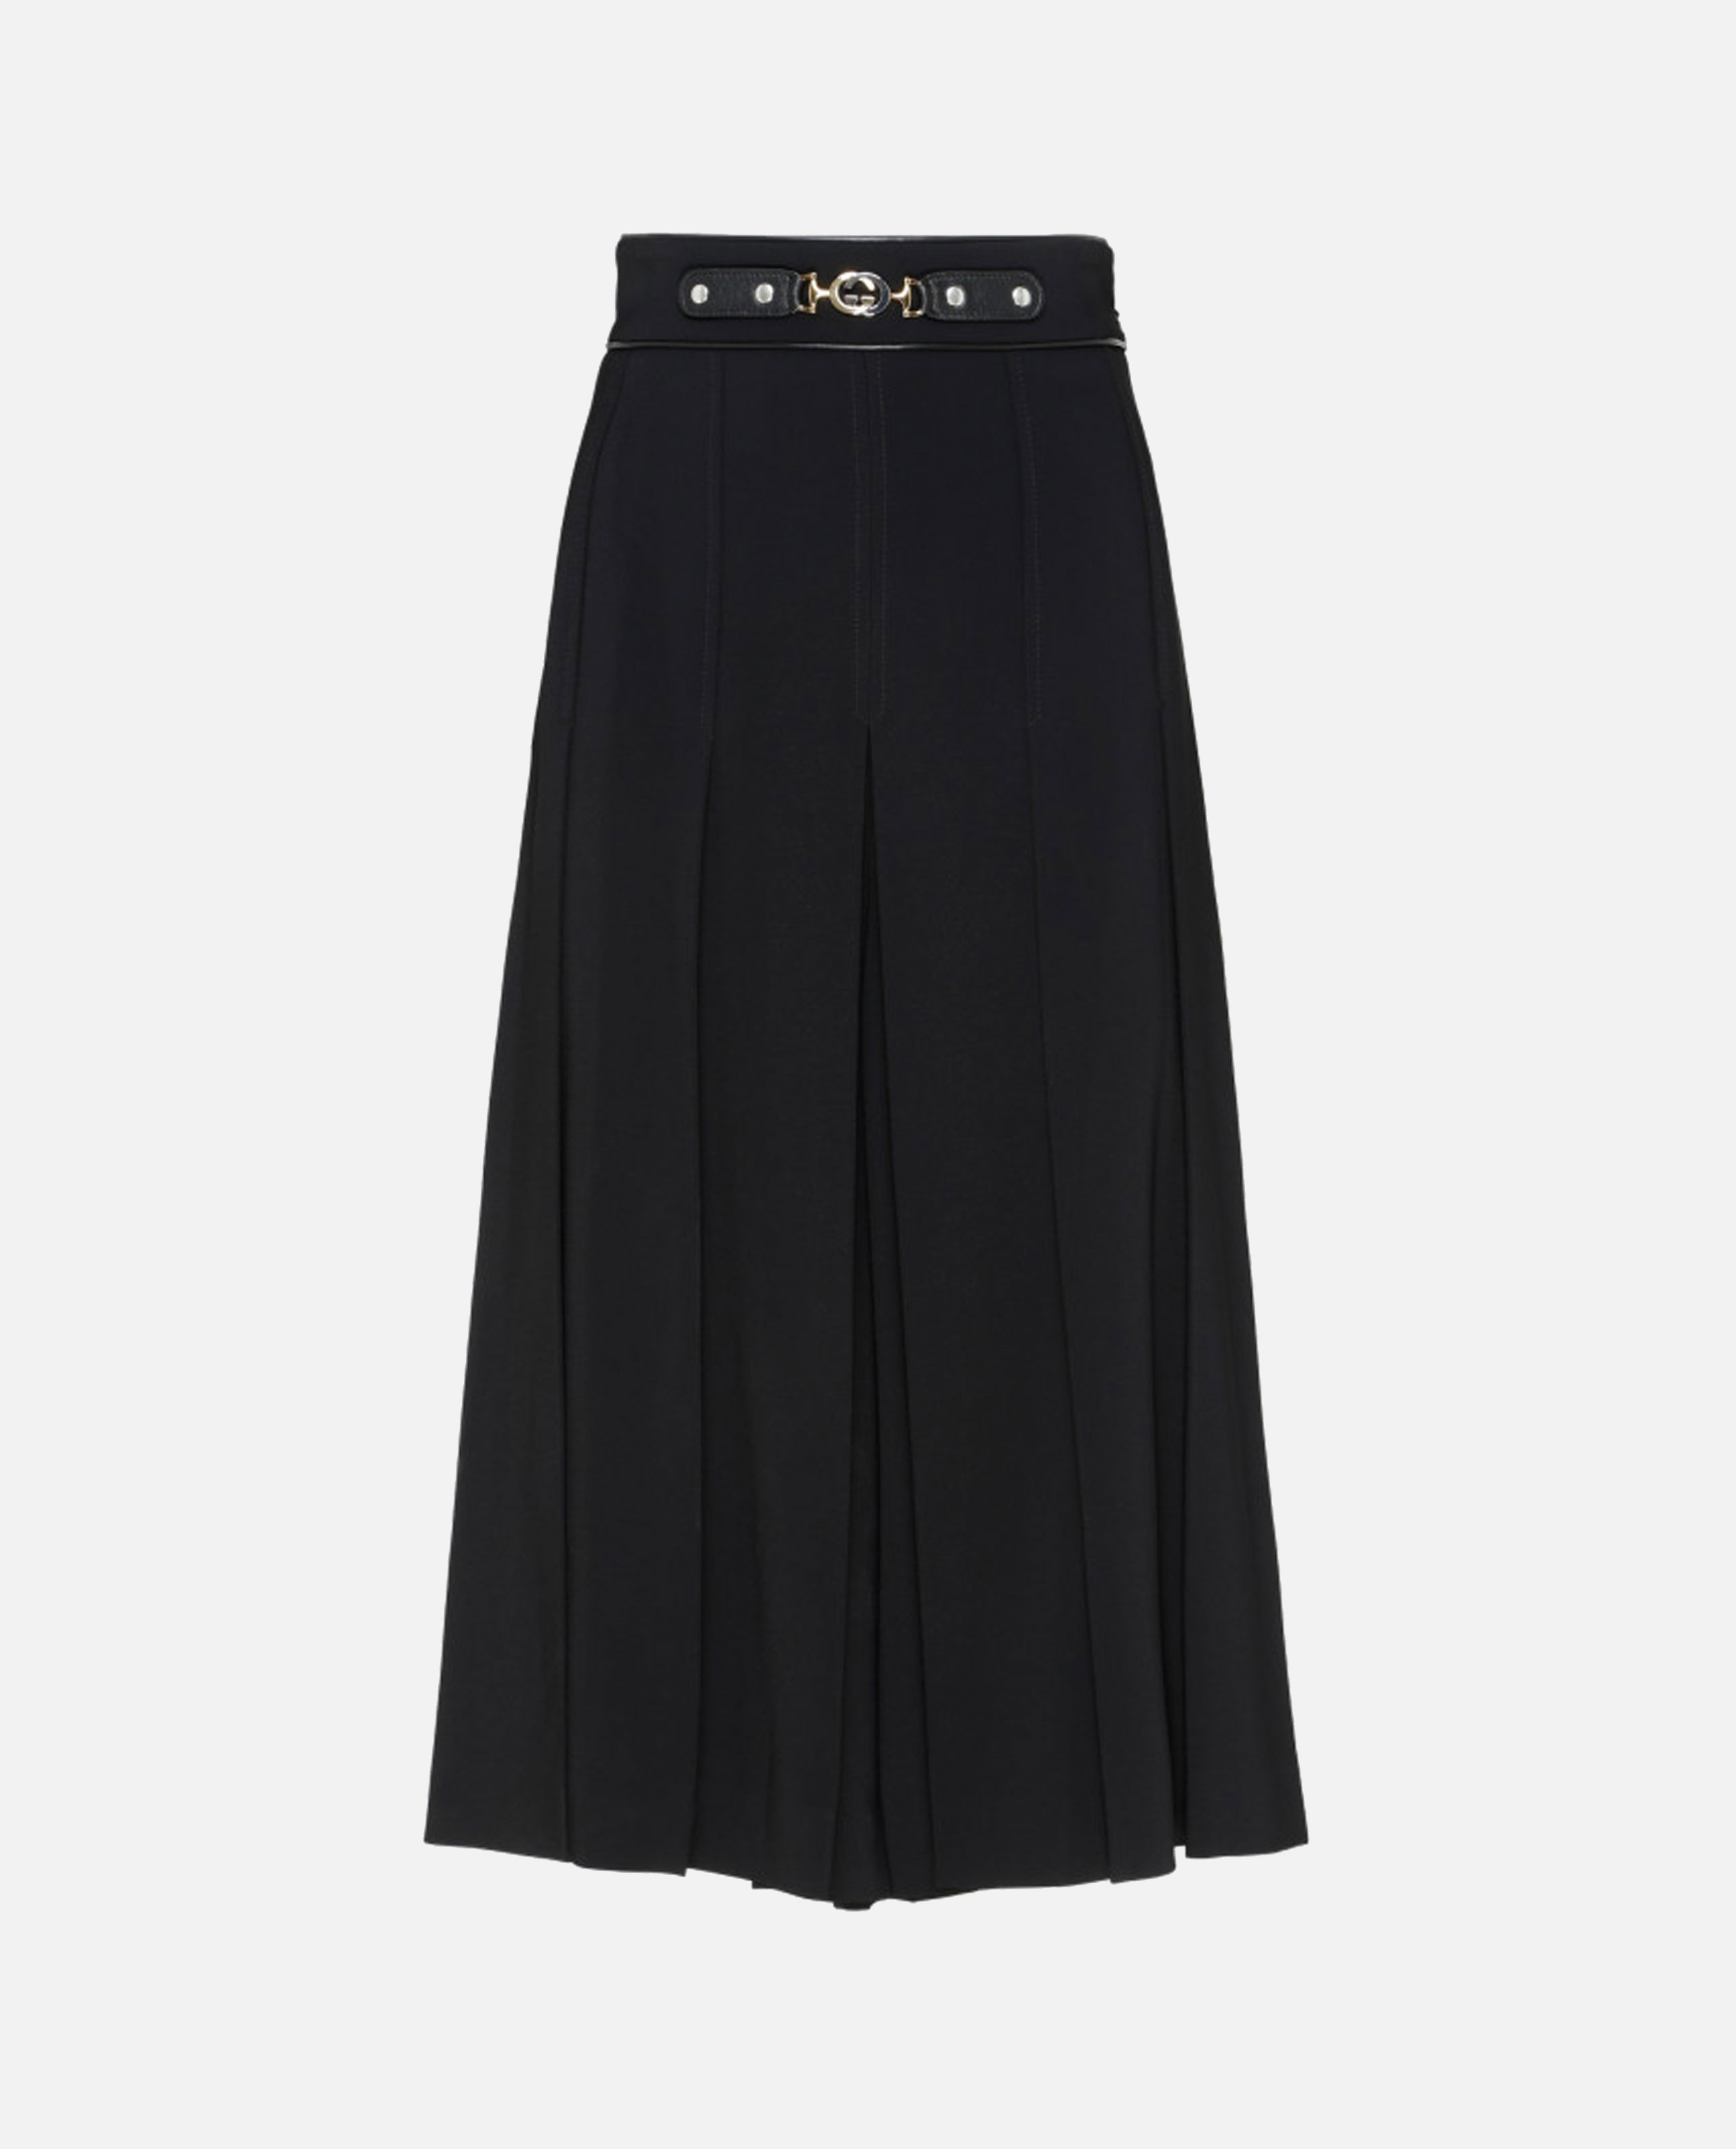 Culotte trousers with black horsebit Women Gucci 000219730032523 1